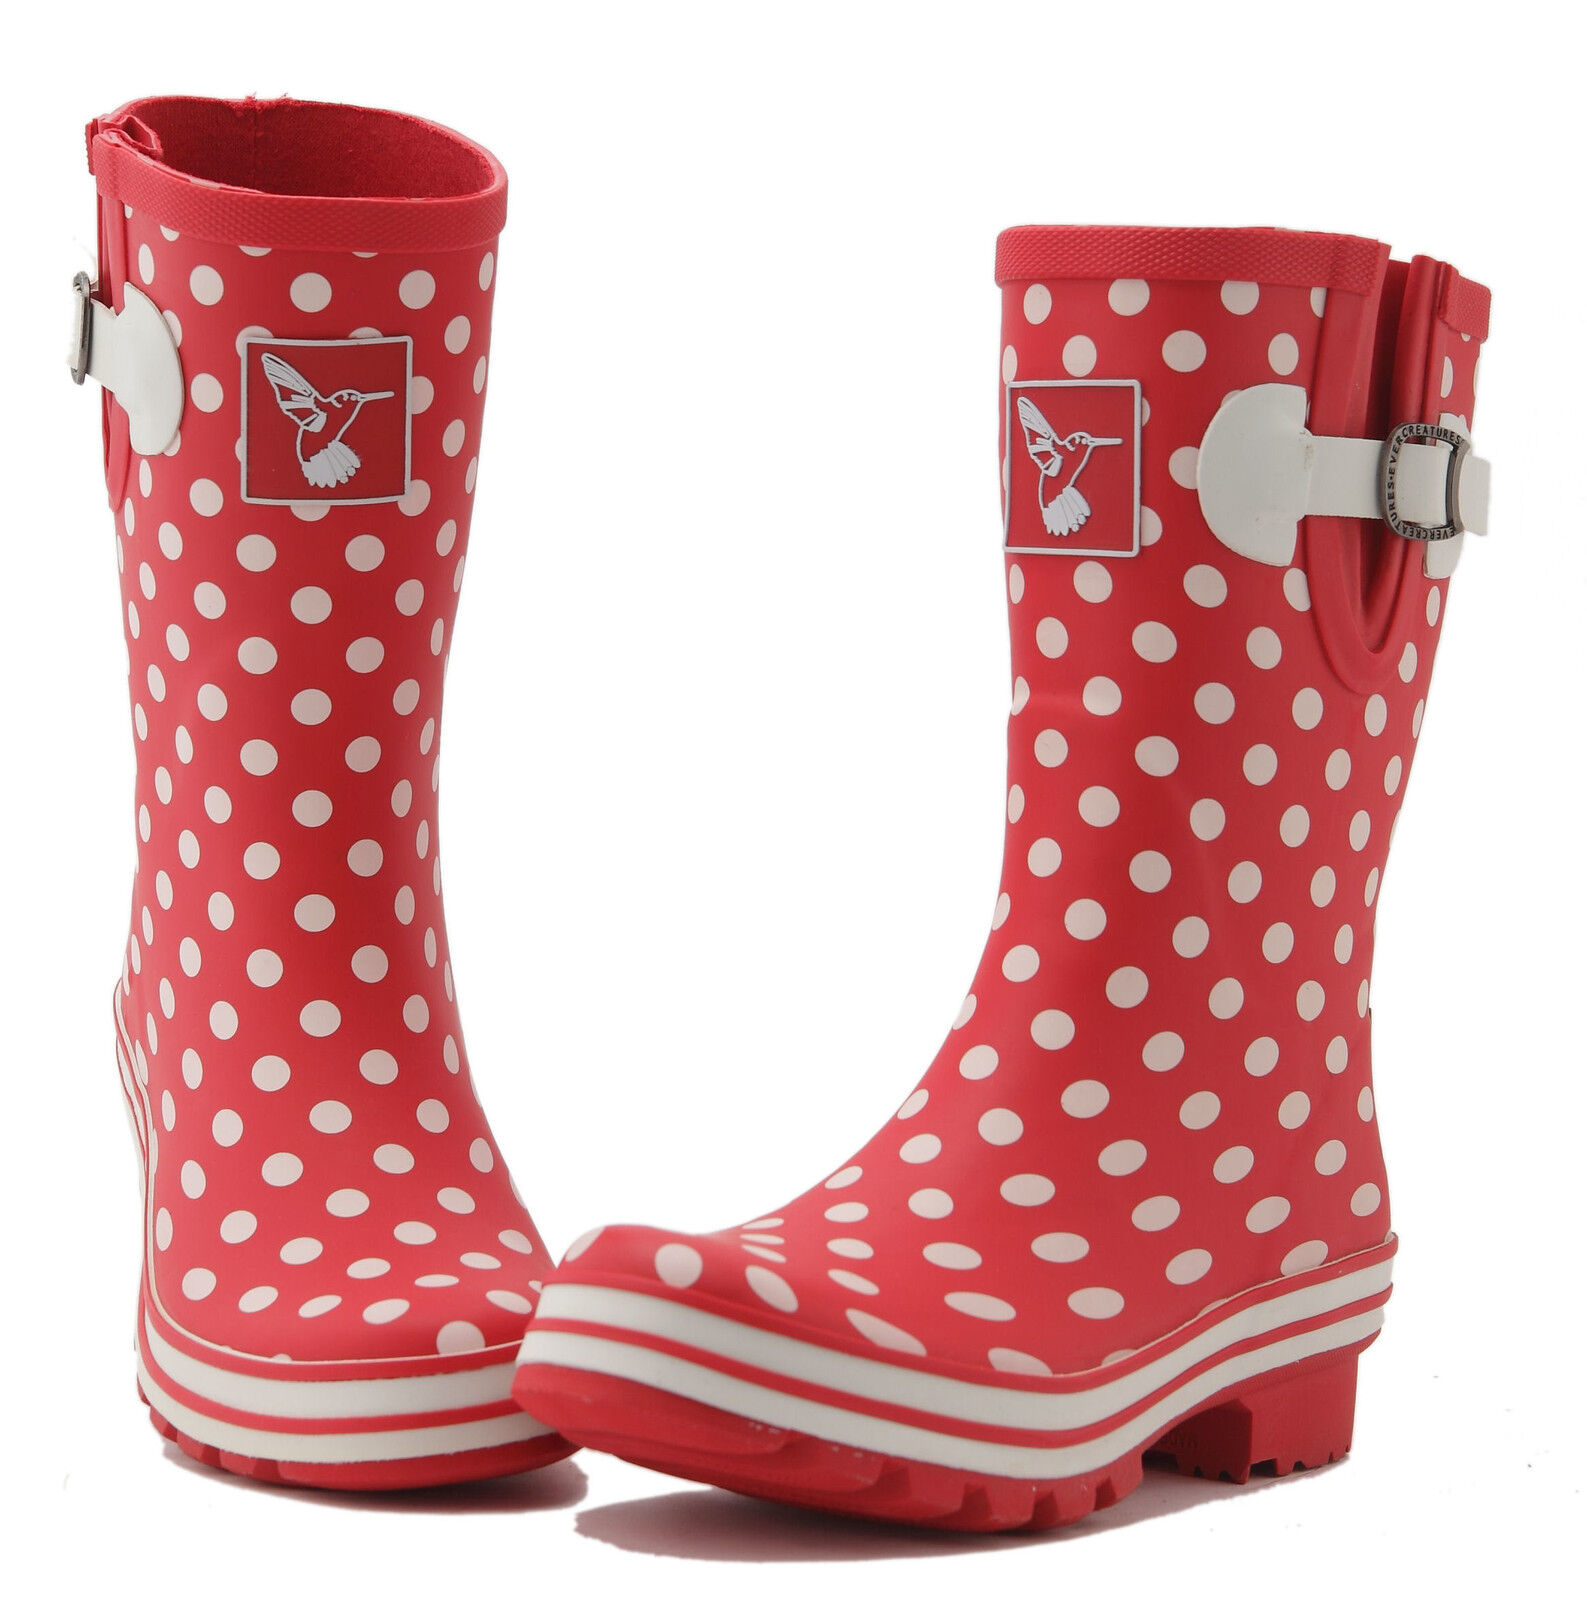 Ladies Wellies Wellies Wellies Winter Boots Rain Boots Designer Mid-Calf Wellys Evercreatures ca5c98